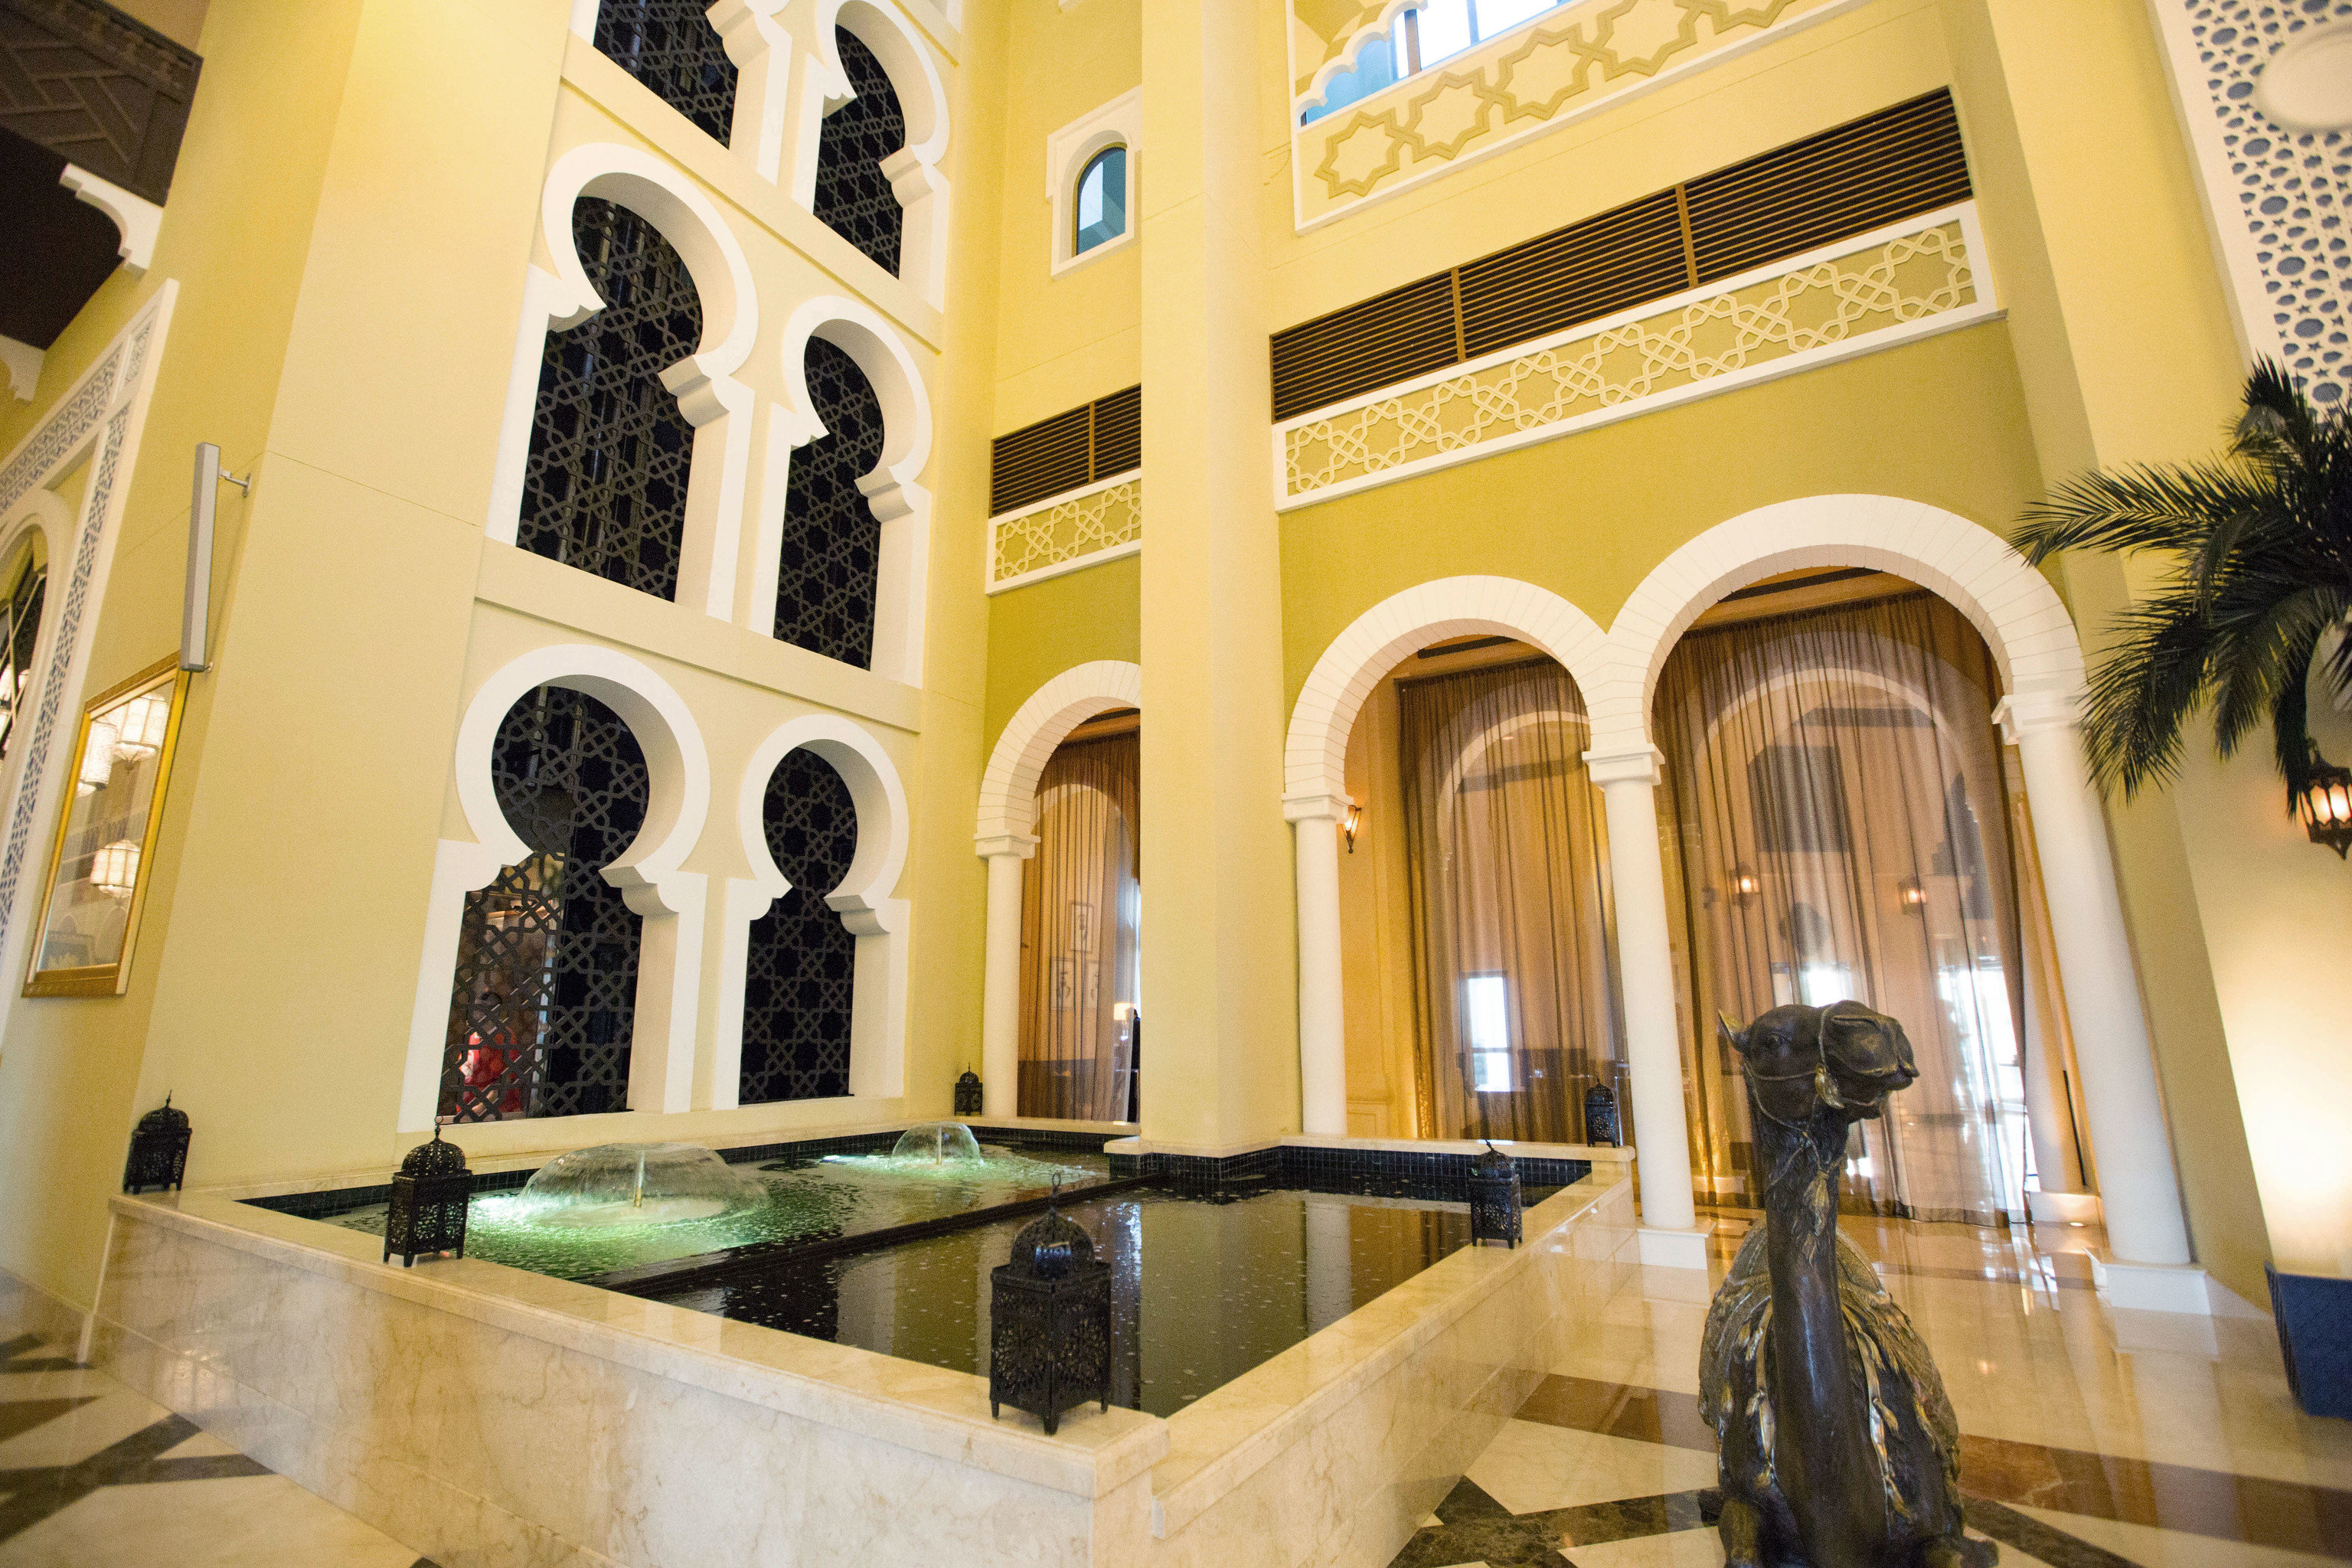 property building Architecture palace Lobby Courtyard mansion home Villa tourist attraction Resort Bath